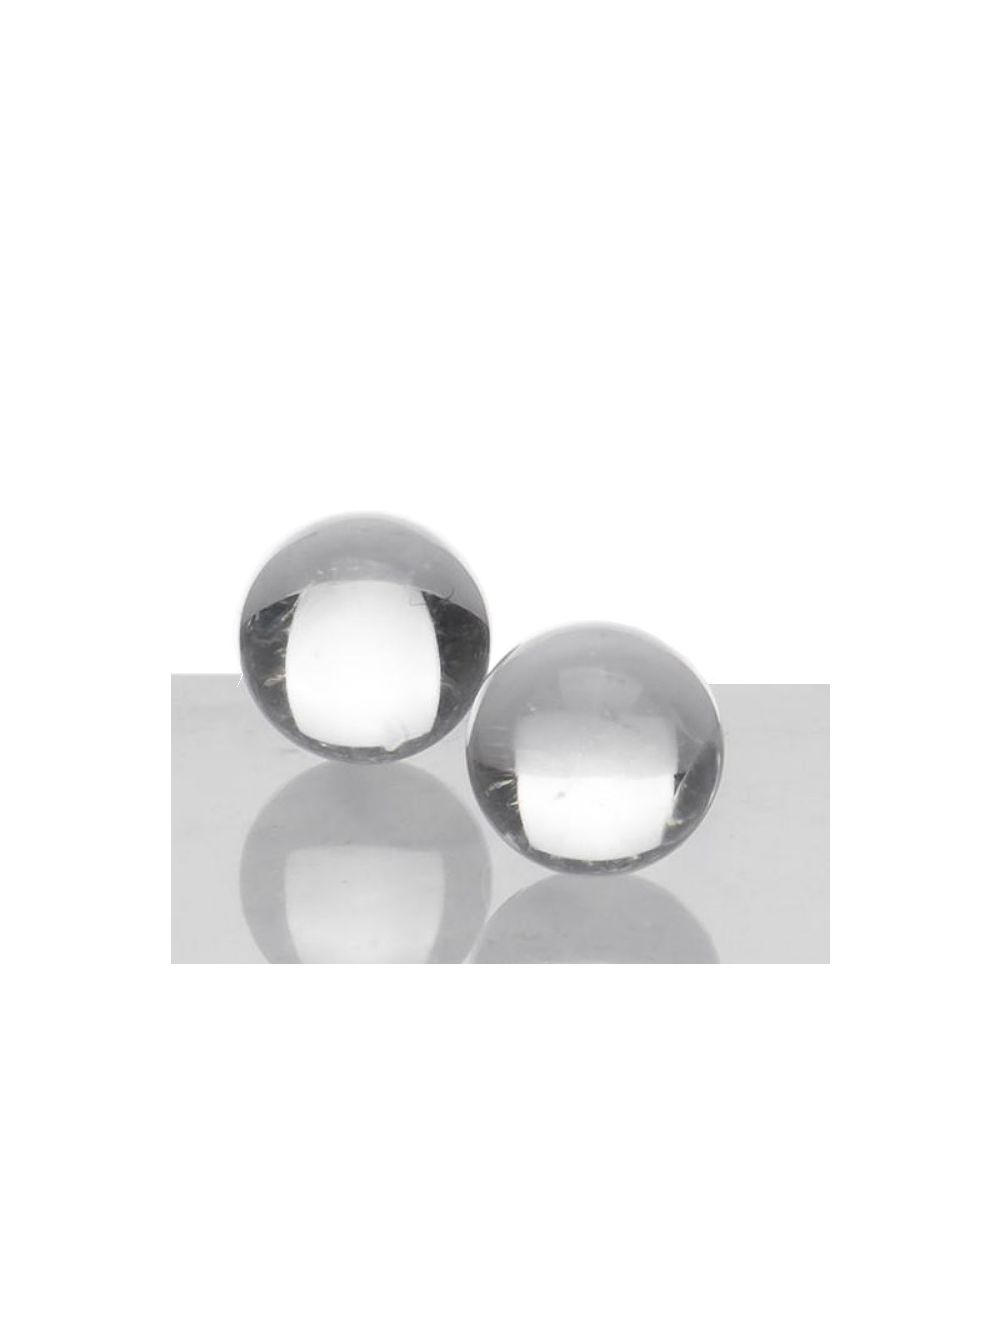 5mm Quartz Terp Pearls 2 pack (9312) - Vapefiend UK